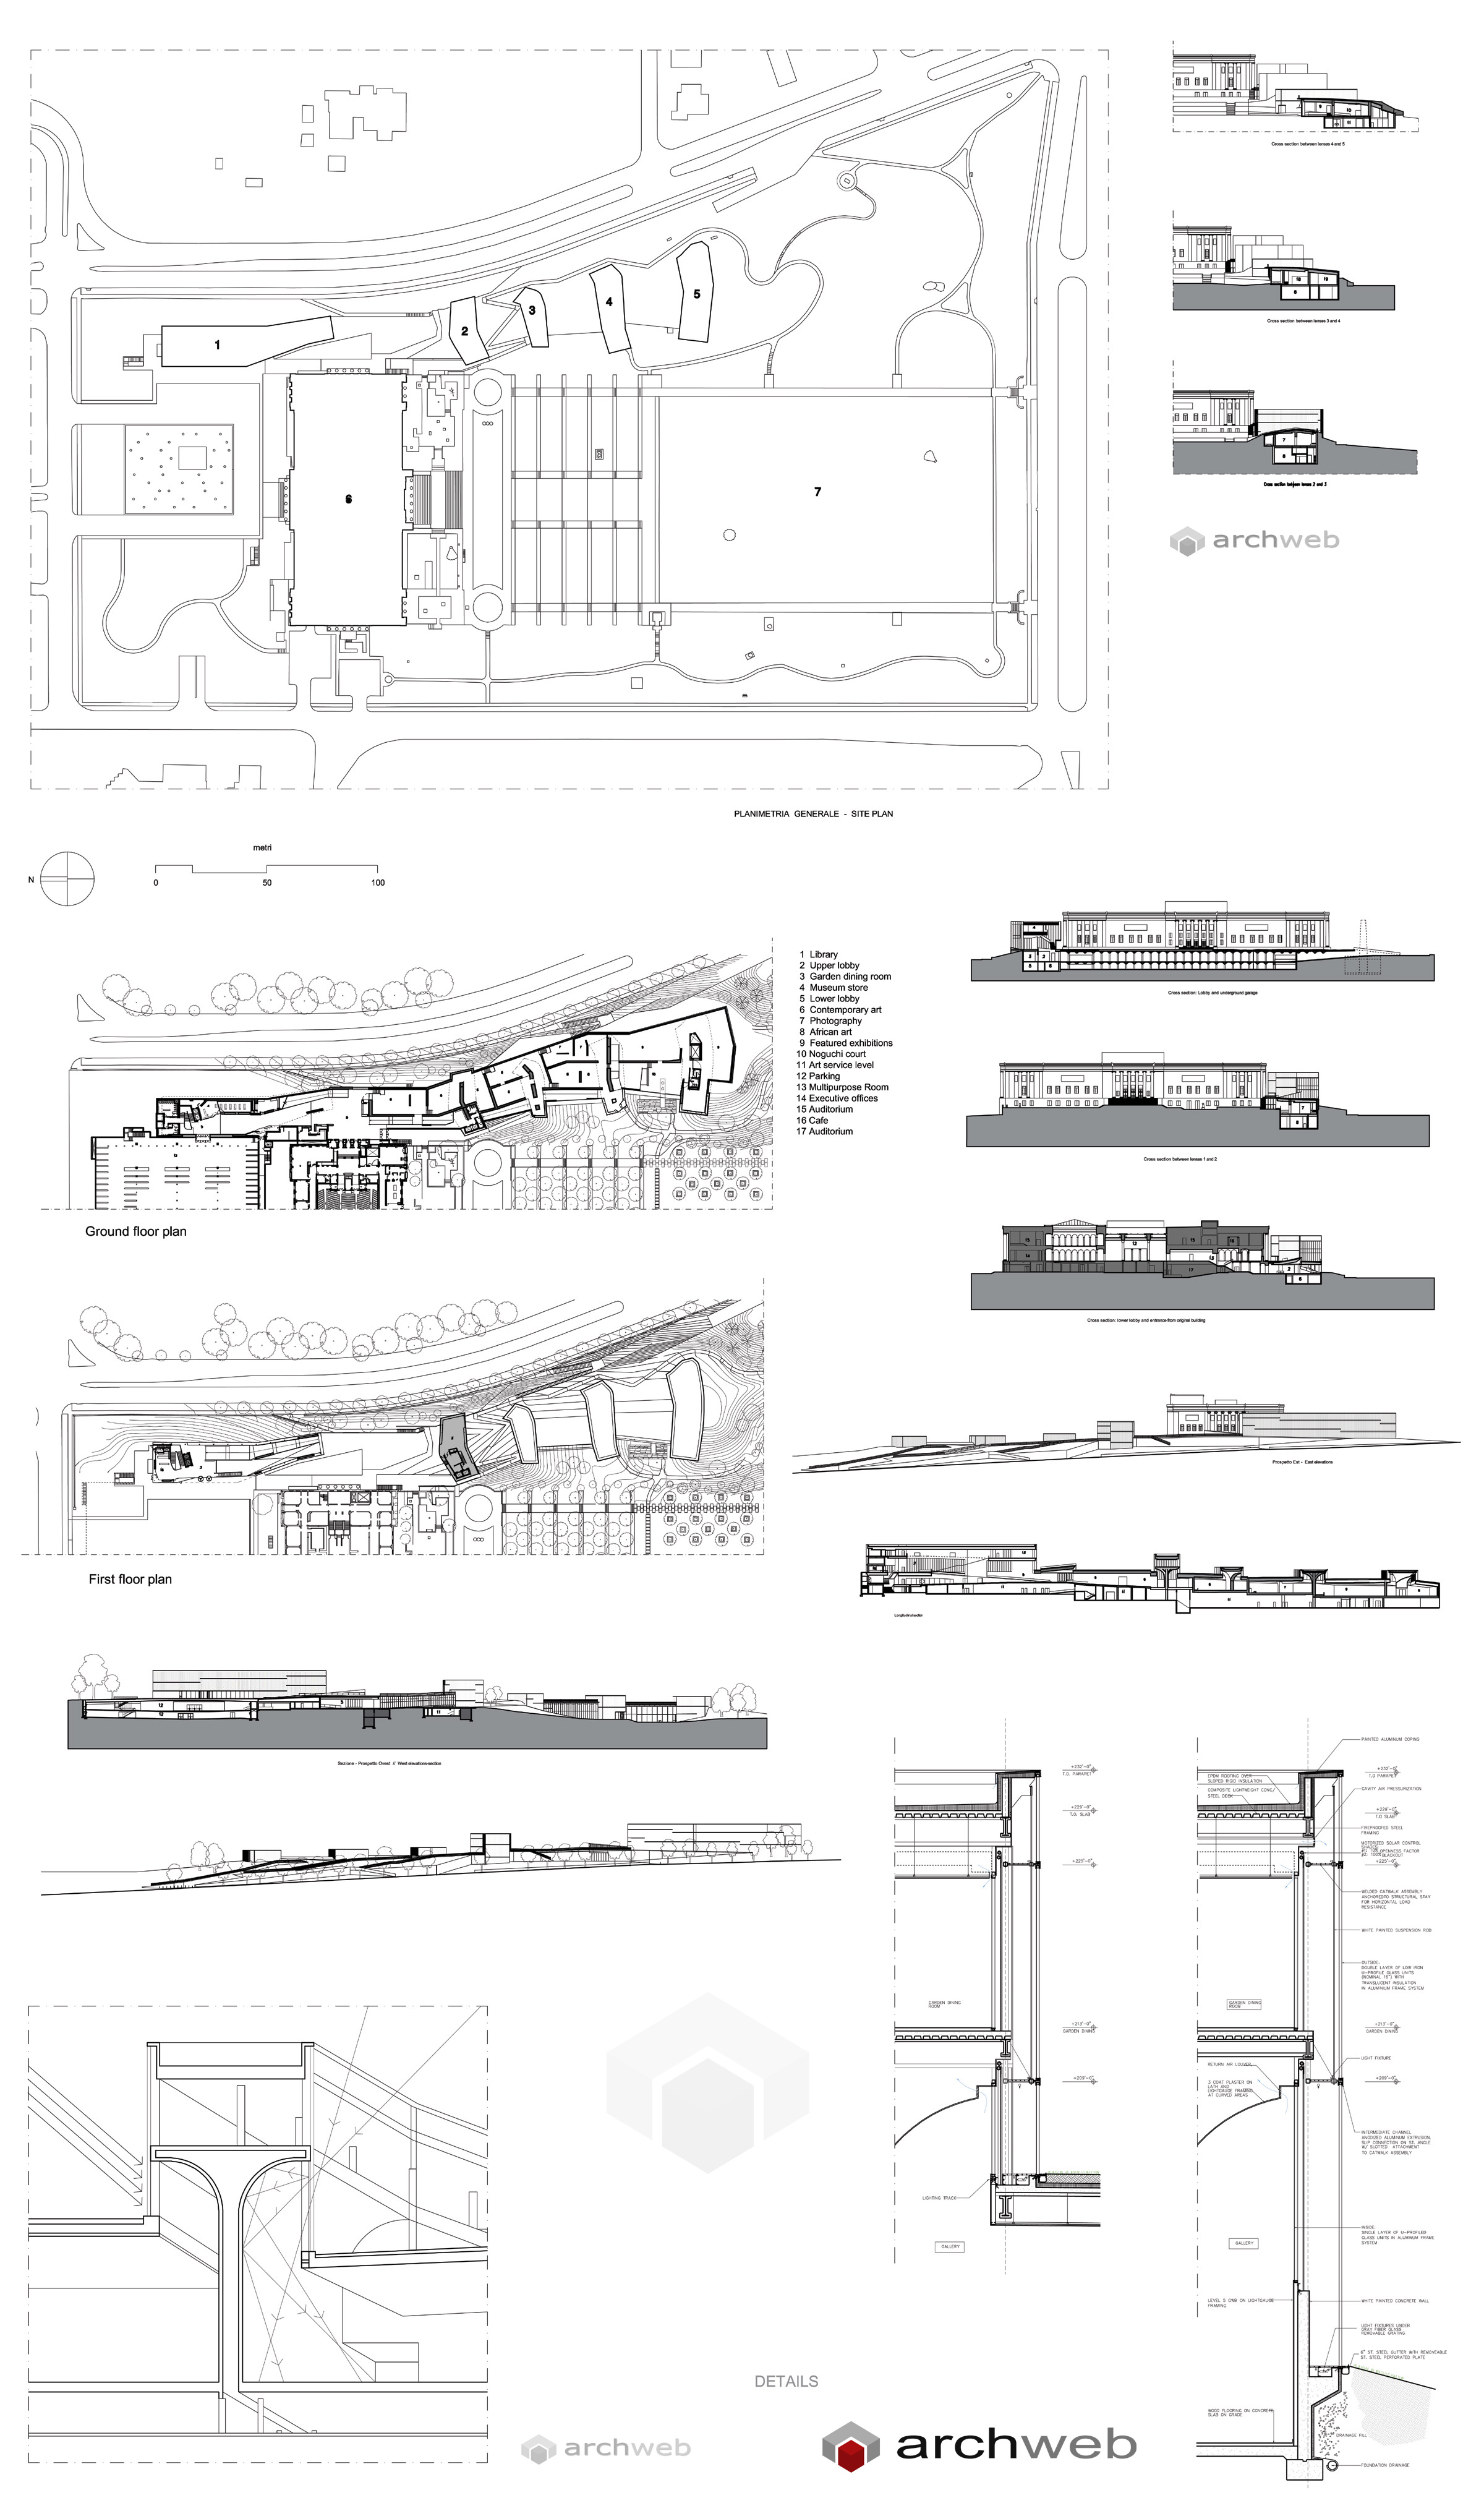 1000 images about cad dwg on pinterest for Archweb arredi